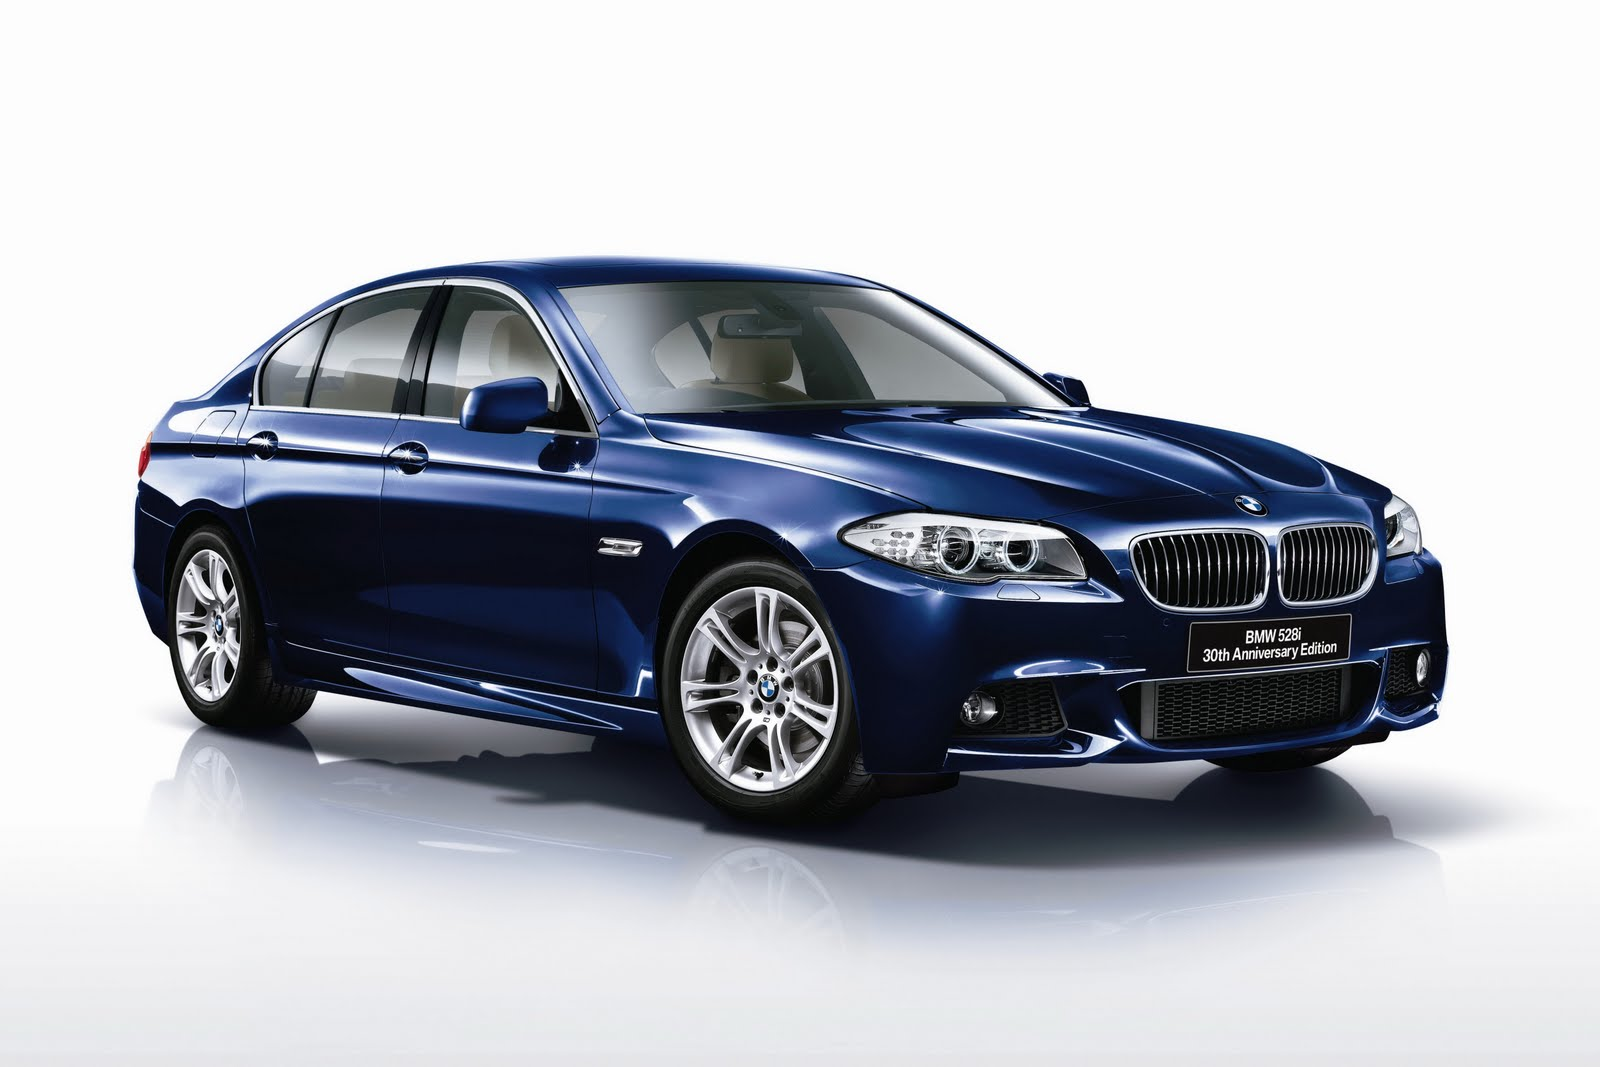 Yesterday we had the all new BMW 528i 2 0 Twin Power Turbo 245 bhp